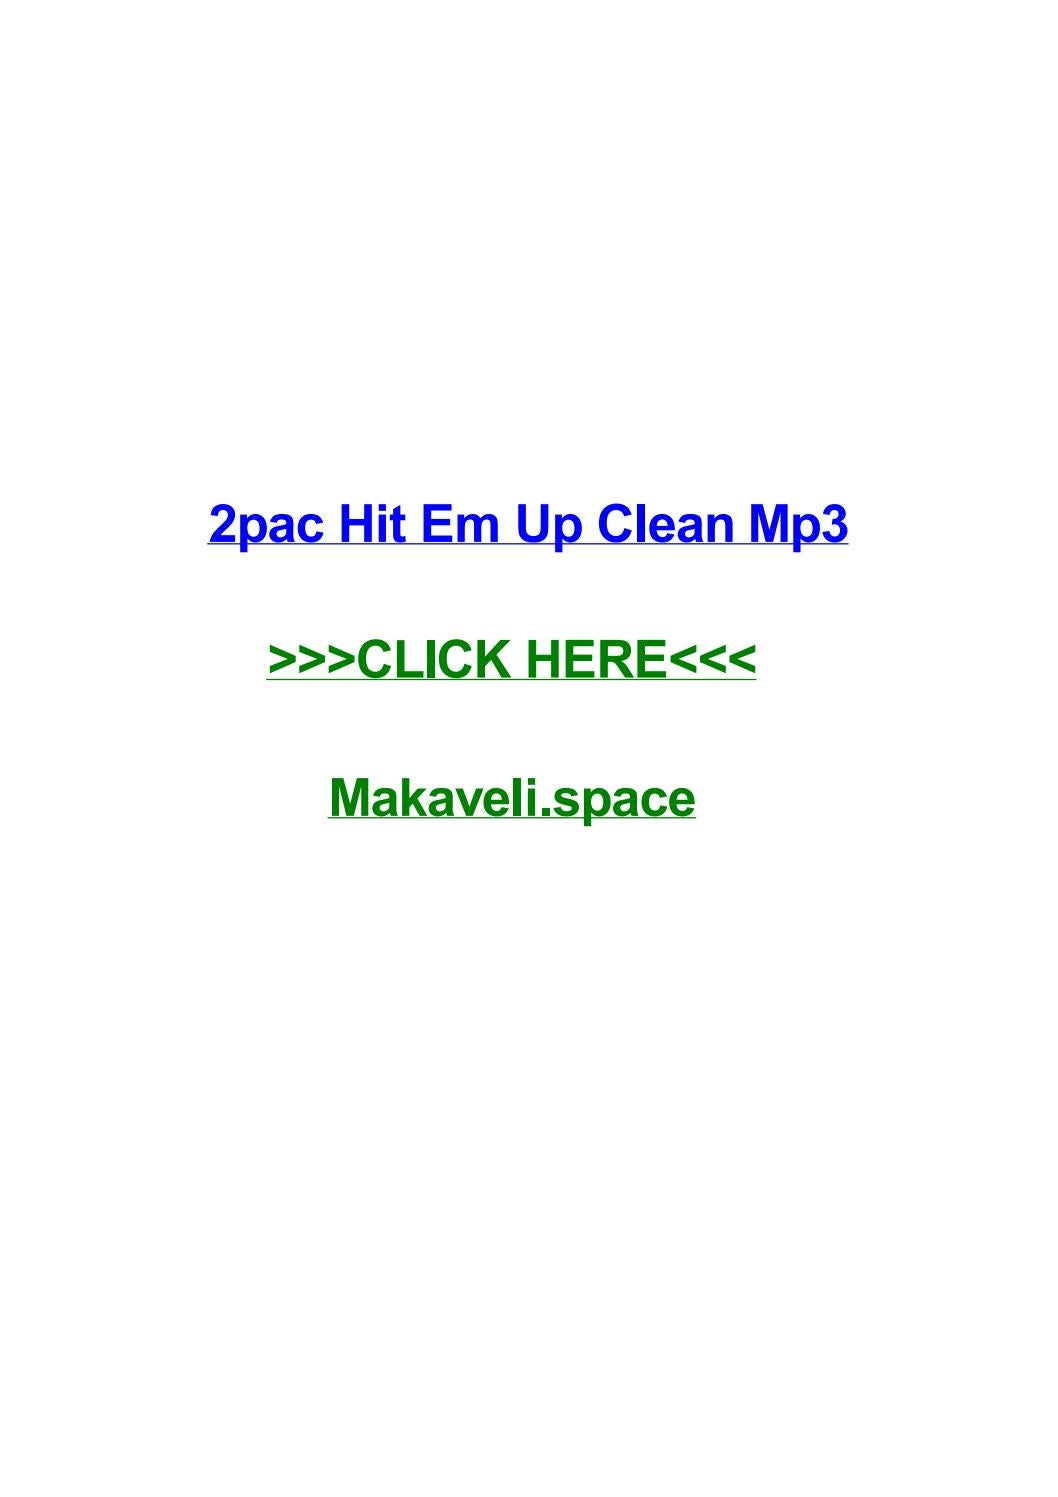 2pac hit em up clean mp3 by tonyaajril - issuu